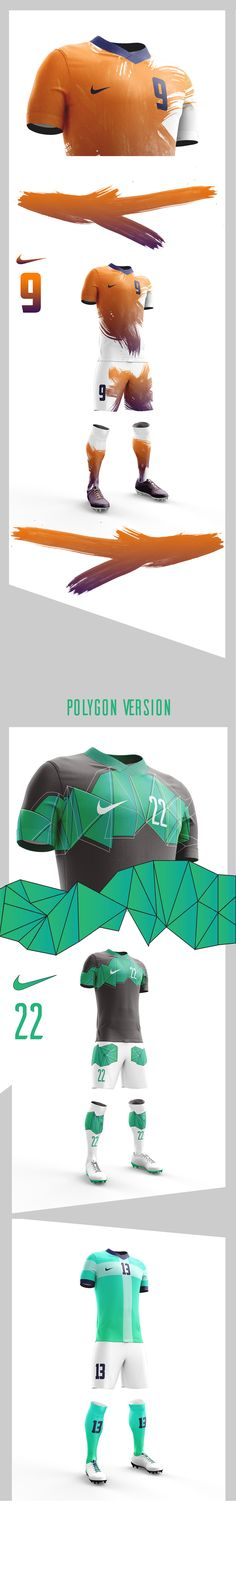 Football tenue design on Behance